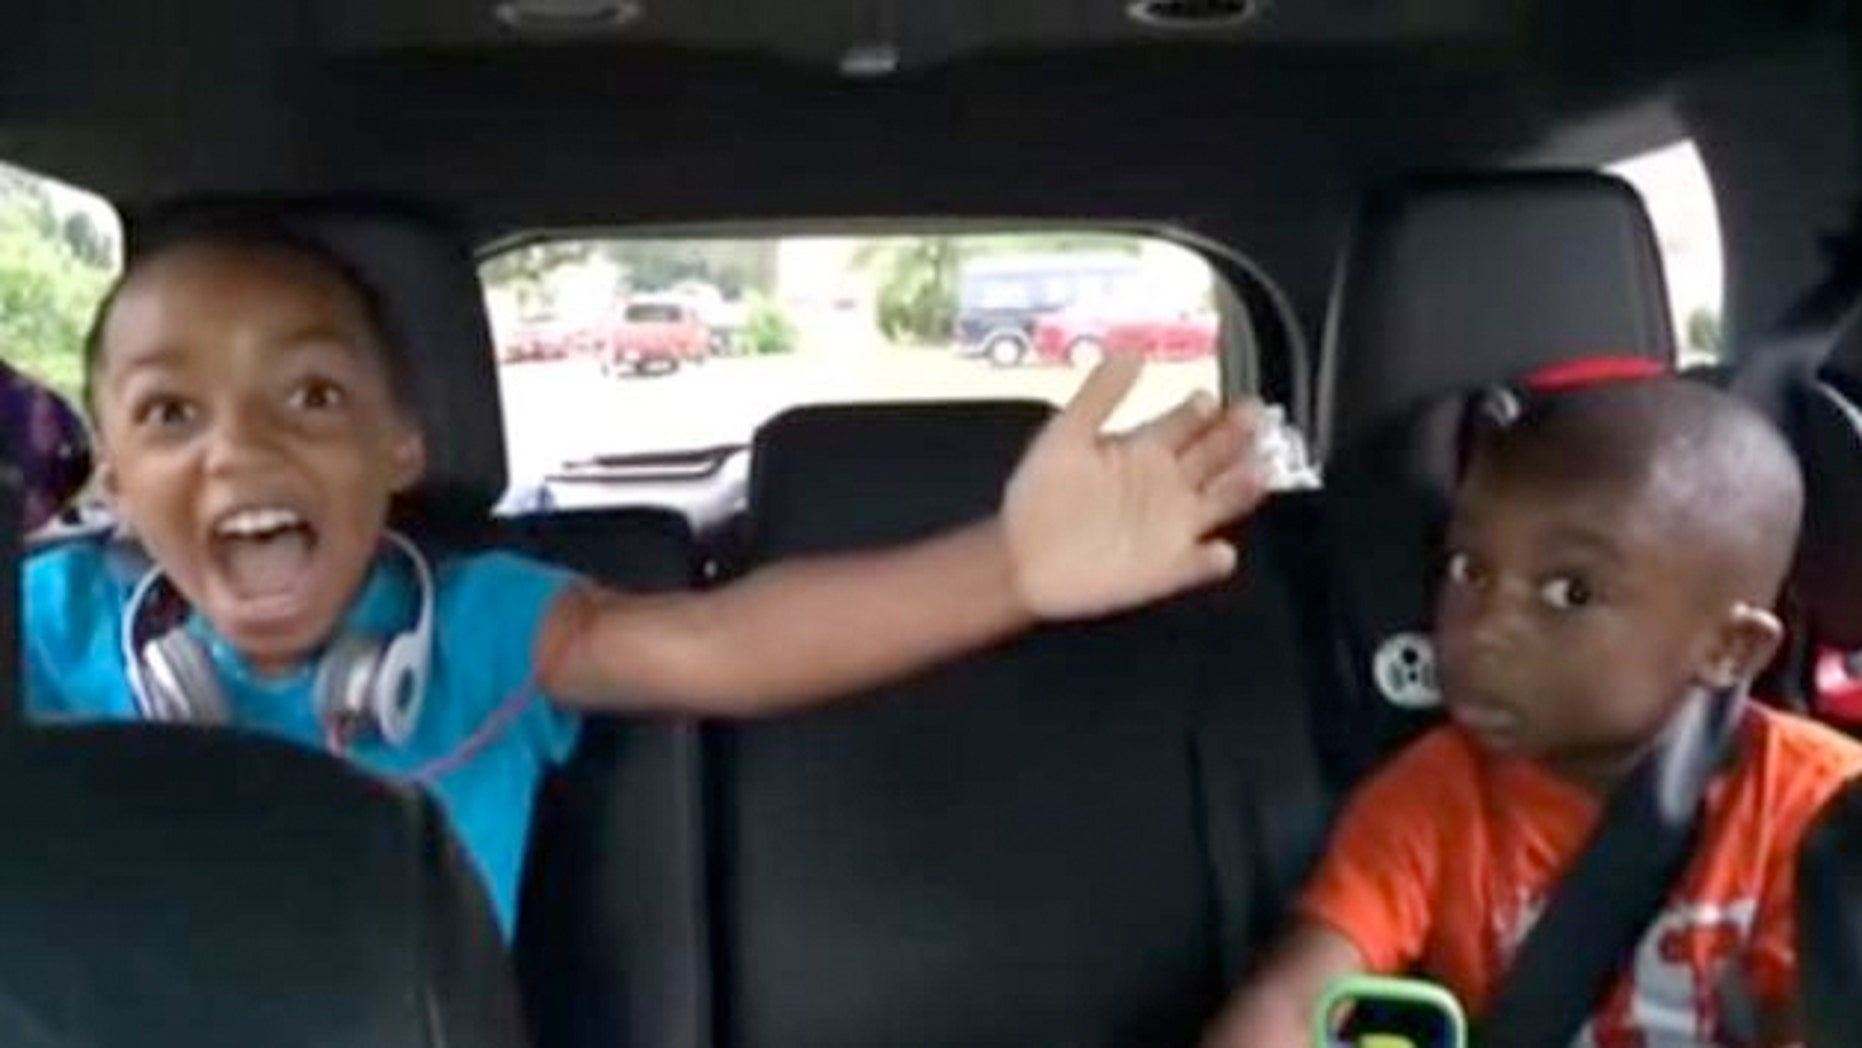 A mom and dad decided to surprise their young kids with a trip to  Disney World --but got a reaction they were expecting.